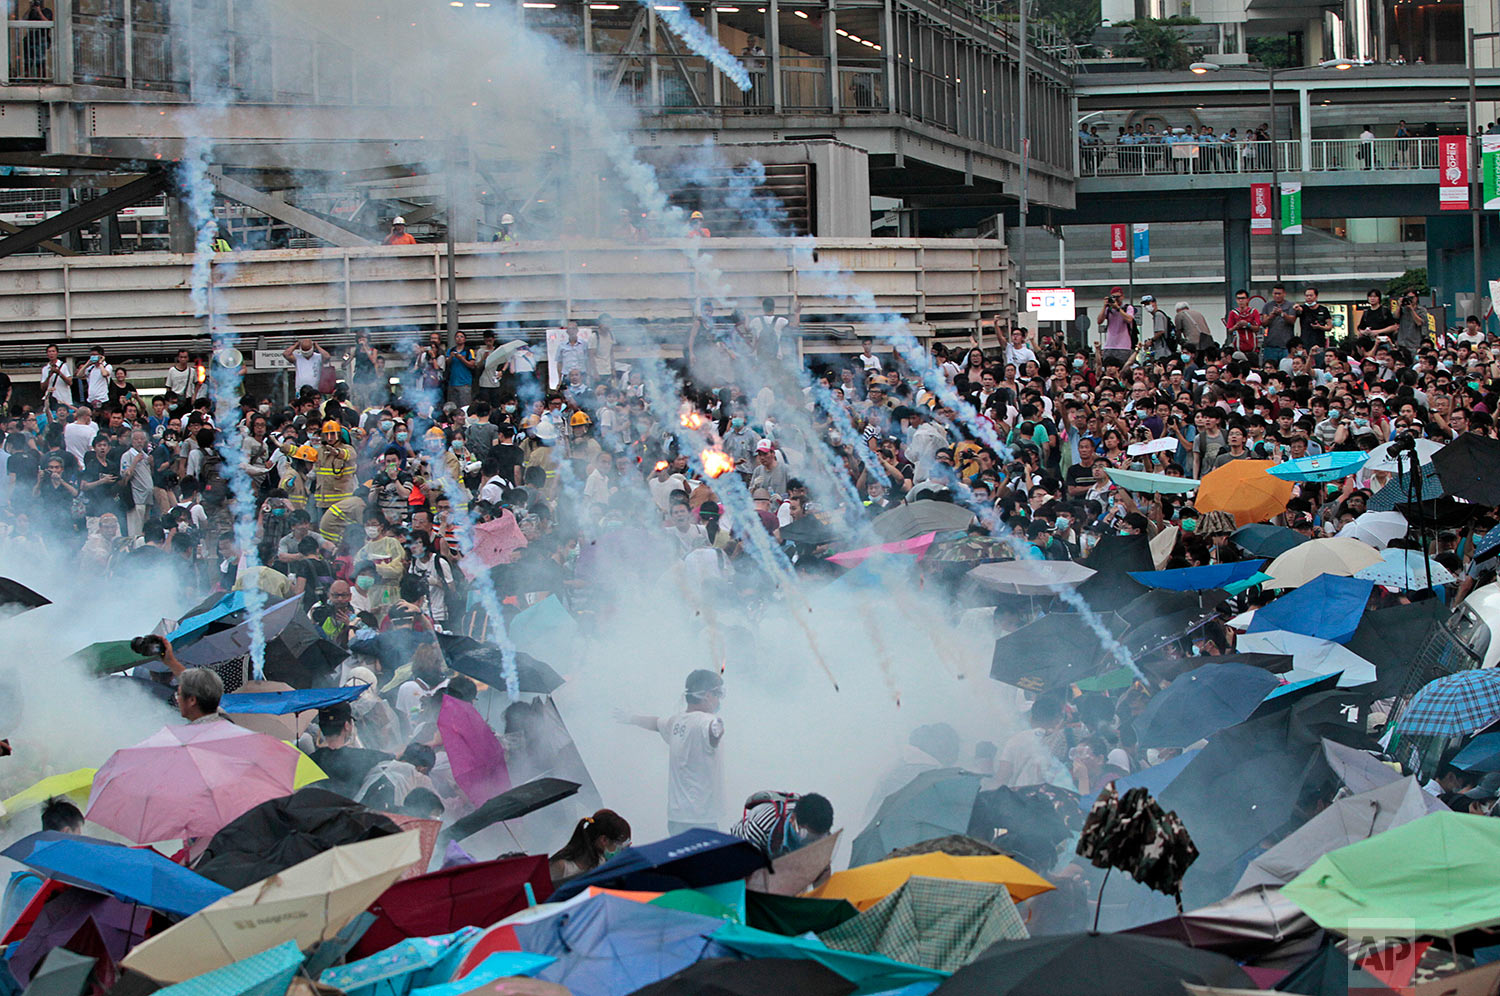 Riot police launch tear gas into the crowd as thousands of protesters surround the government headquarters in Hong Kong, Sept. 28, 2014. (AP Photo/Wally Santana)